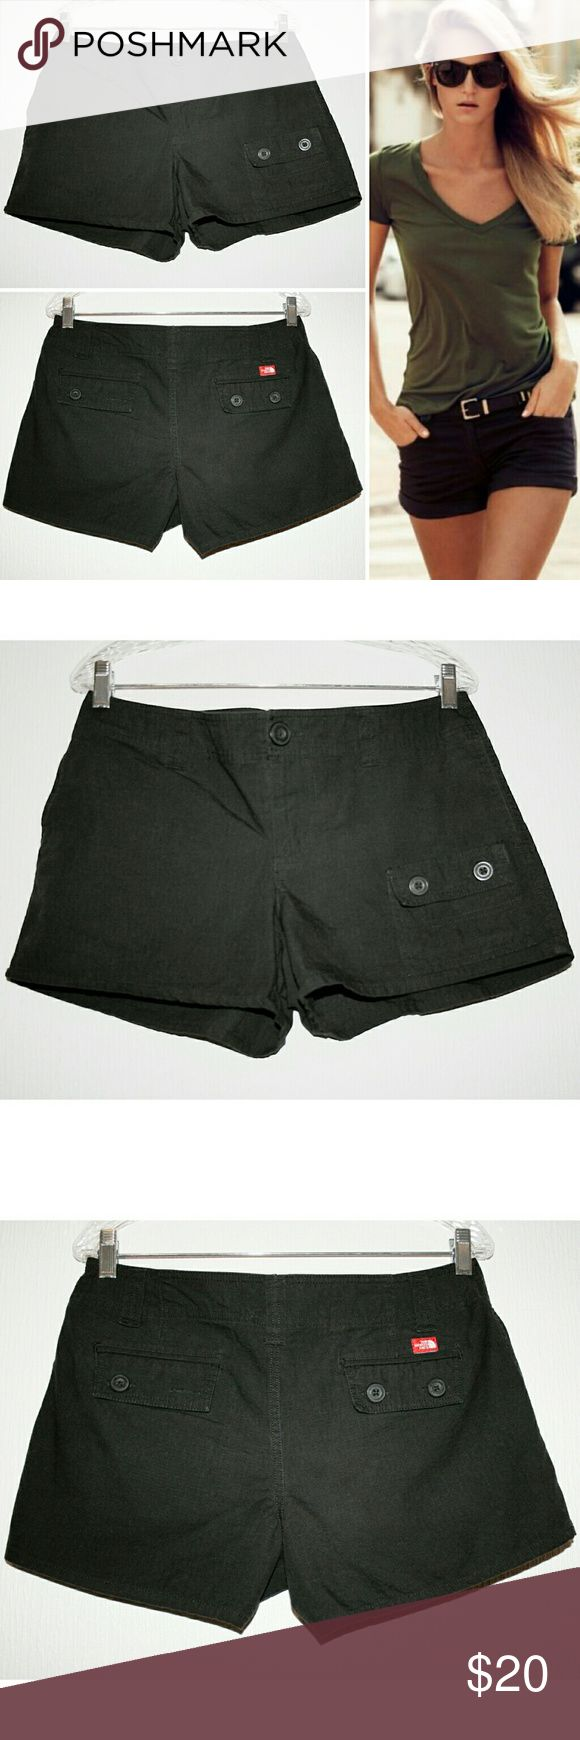 The North Face Black 5-Pocket Cotton Shorts These black shorts are both high-quality and stylish! The 100% cotton fabric is woven in a geometric square pattern, and the interlocking fibers add to their outstanding toughness and durability! They feature an asymmetrical patch pocket on the front left thigh, two regular front pockets that open from the sides, and two double buttoned flap closure back pockets. The back left pocket is missing 1 of 2 buttons, but extra are buttons attached to the…